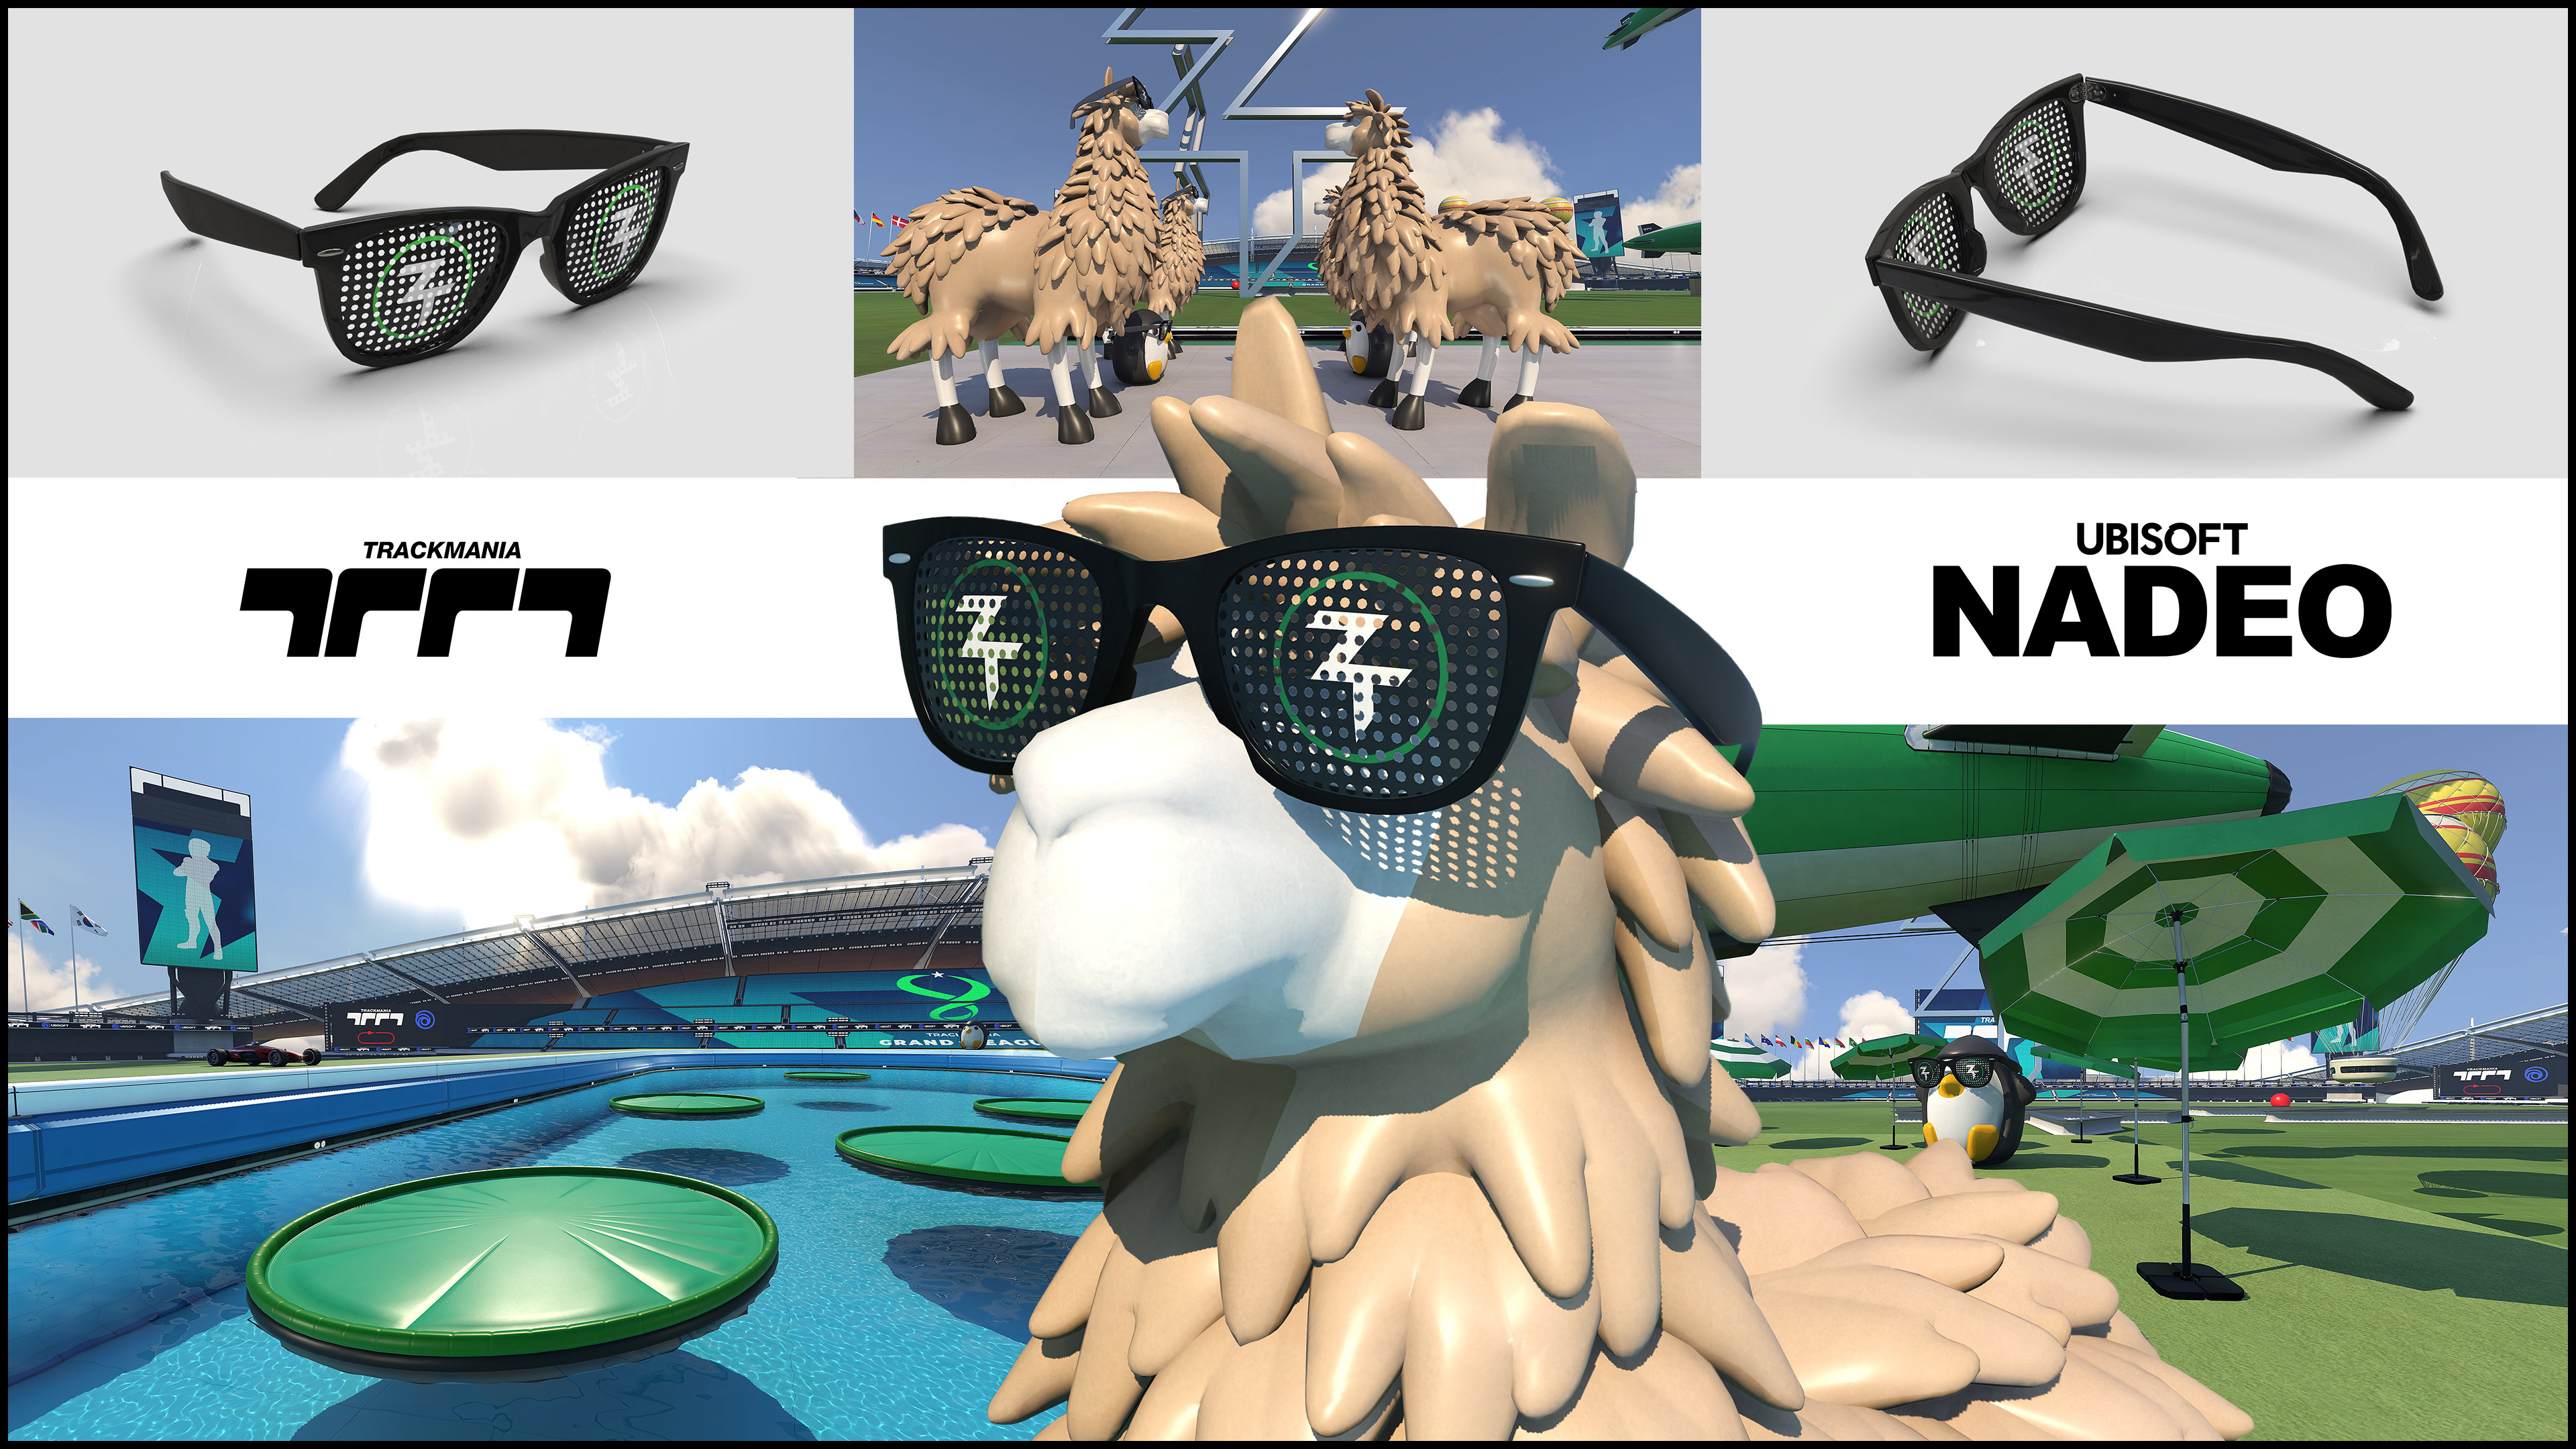 Trackmania Cup Zerator's Items Mash Up.   June 12th Zerator Gonna Start Making Maps Live On Twitch.  After Each Live He delivers The Maps To players Trough His Trackmania Club So People Can Start Training.    Qualifications For The TM Cup Start 17th July.